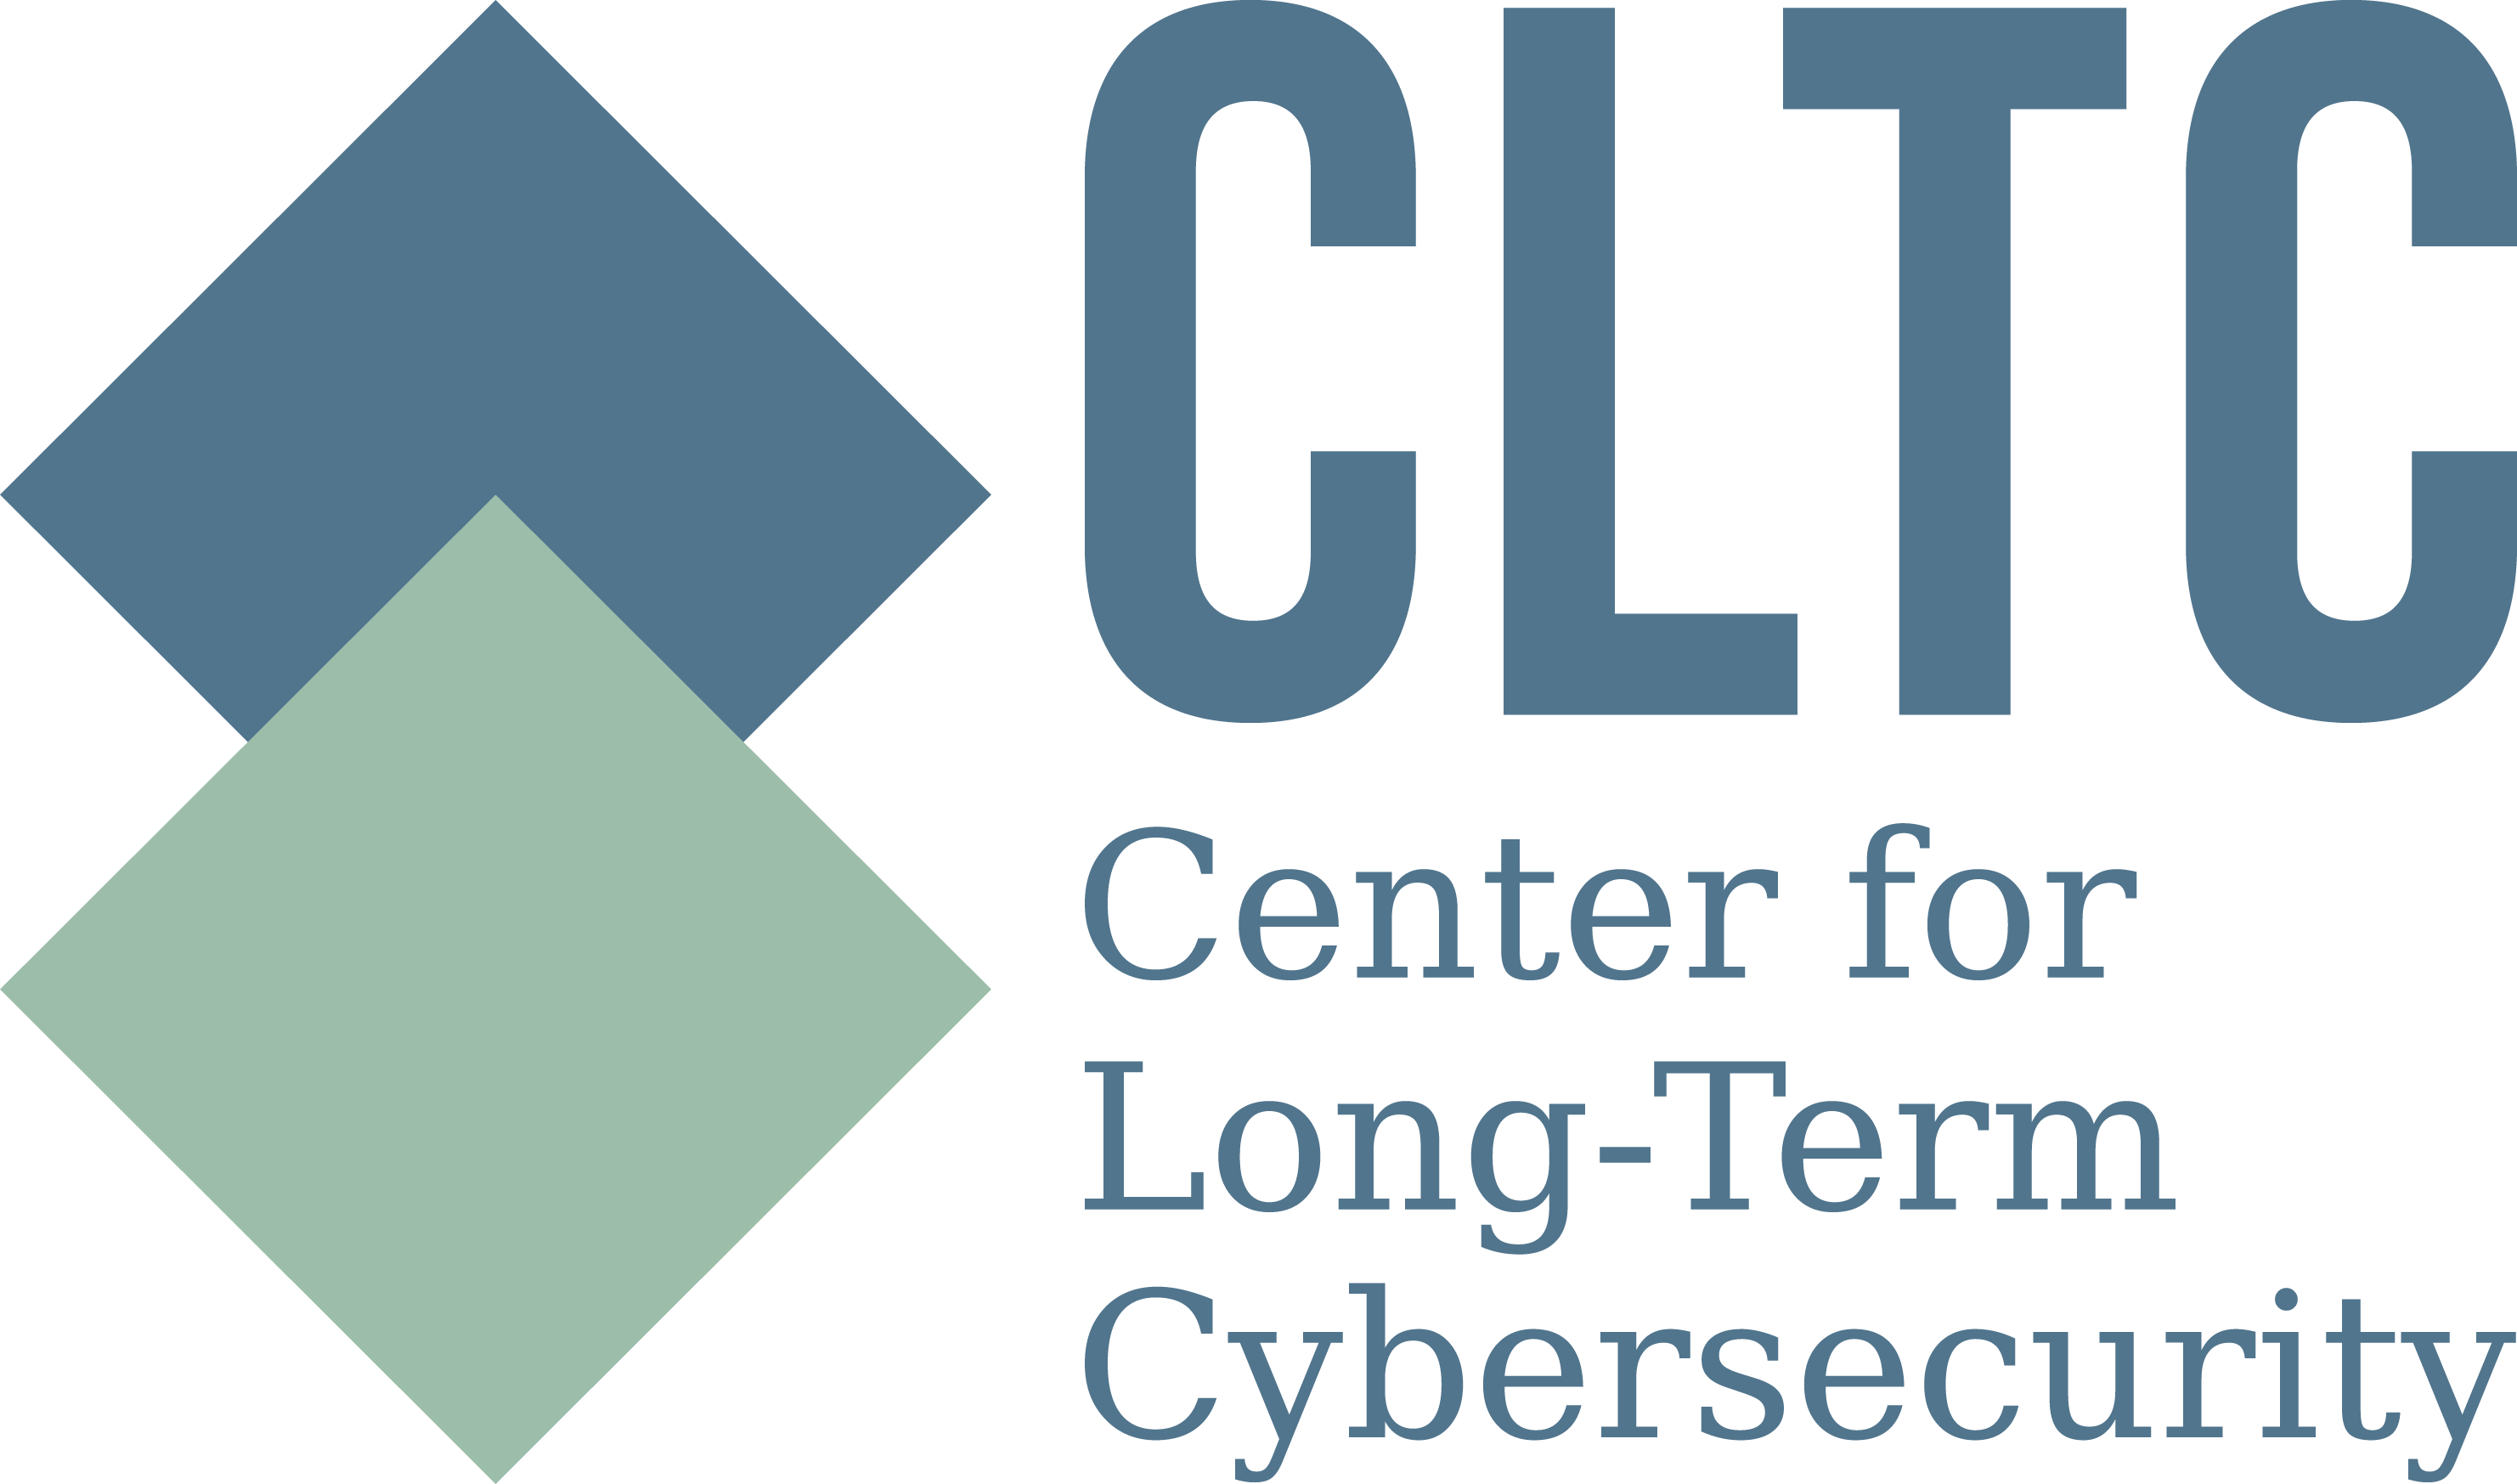 CLTC Center for Long-Term Cybersecurity